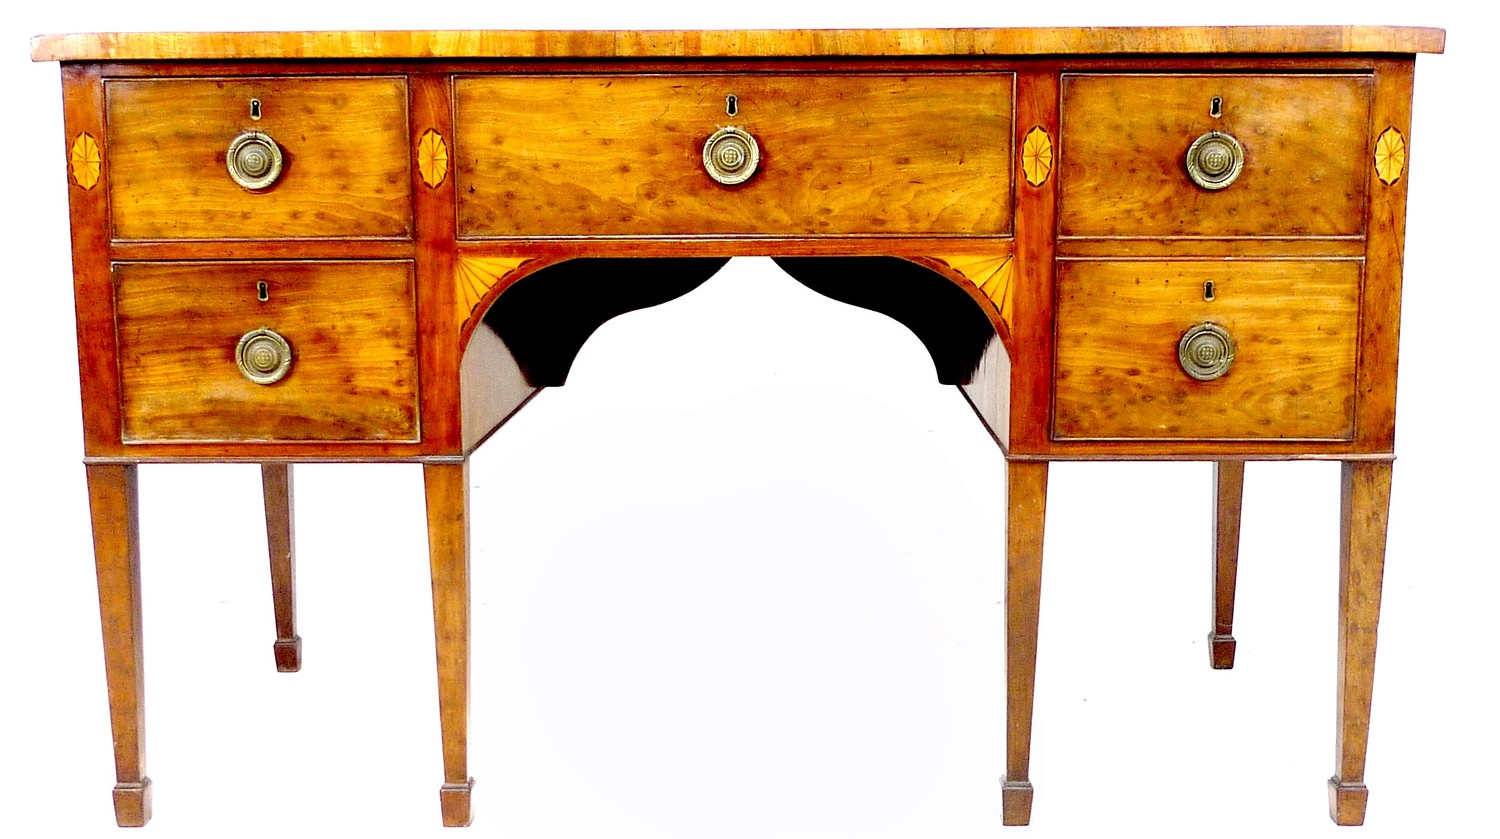 A George III mahogany and fan paterae inlaid sideboard, with five drawers, brass ring handles,